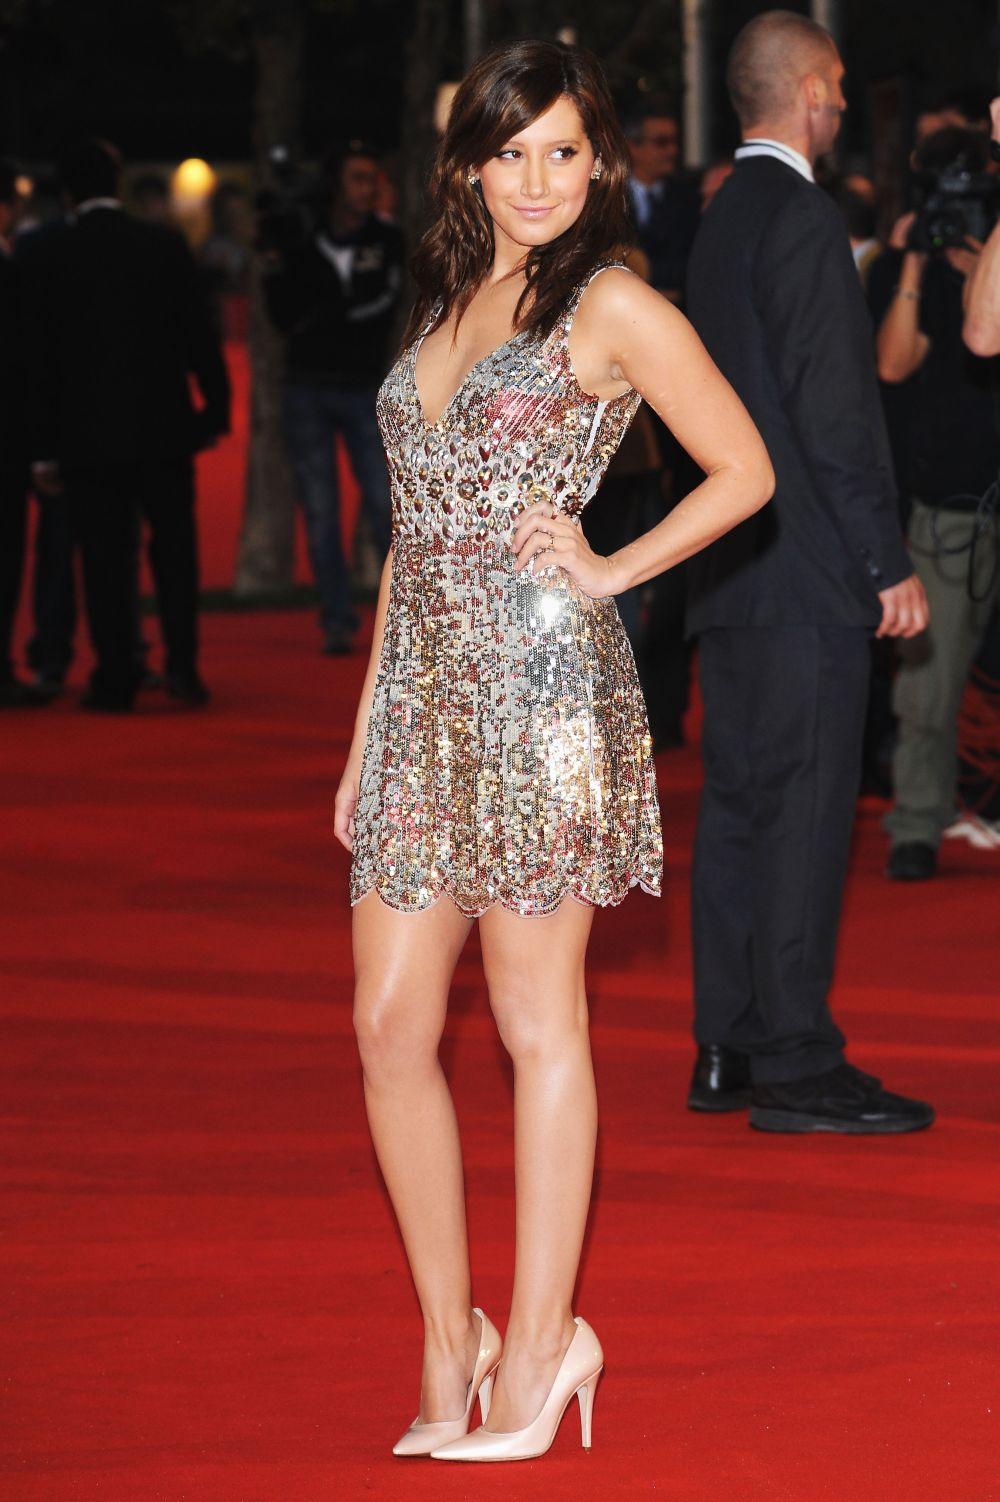 http://onlyinhighheels.files.wordpress.com/2008/10/ashley_tisdale-high_school_musical_3_premiere_during_the_rome_internationa_film_festival-5_122_933lo.jpg